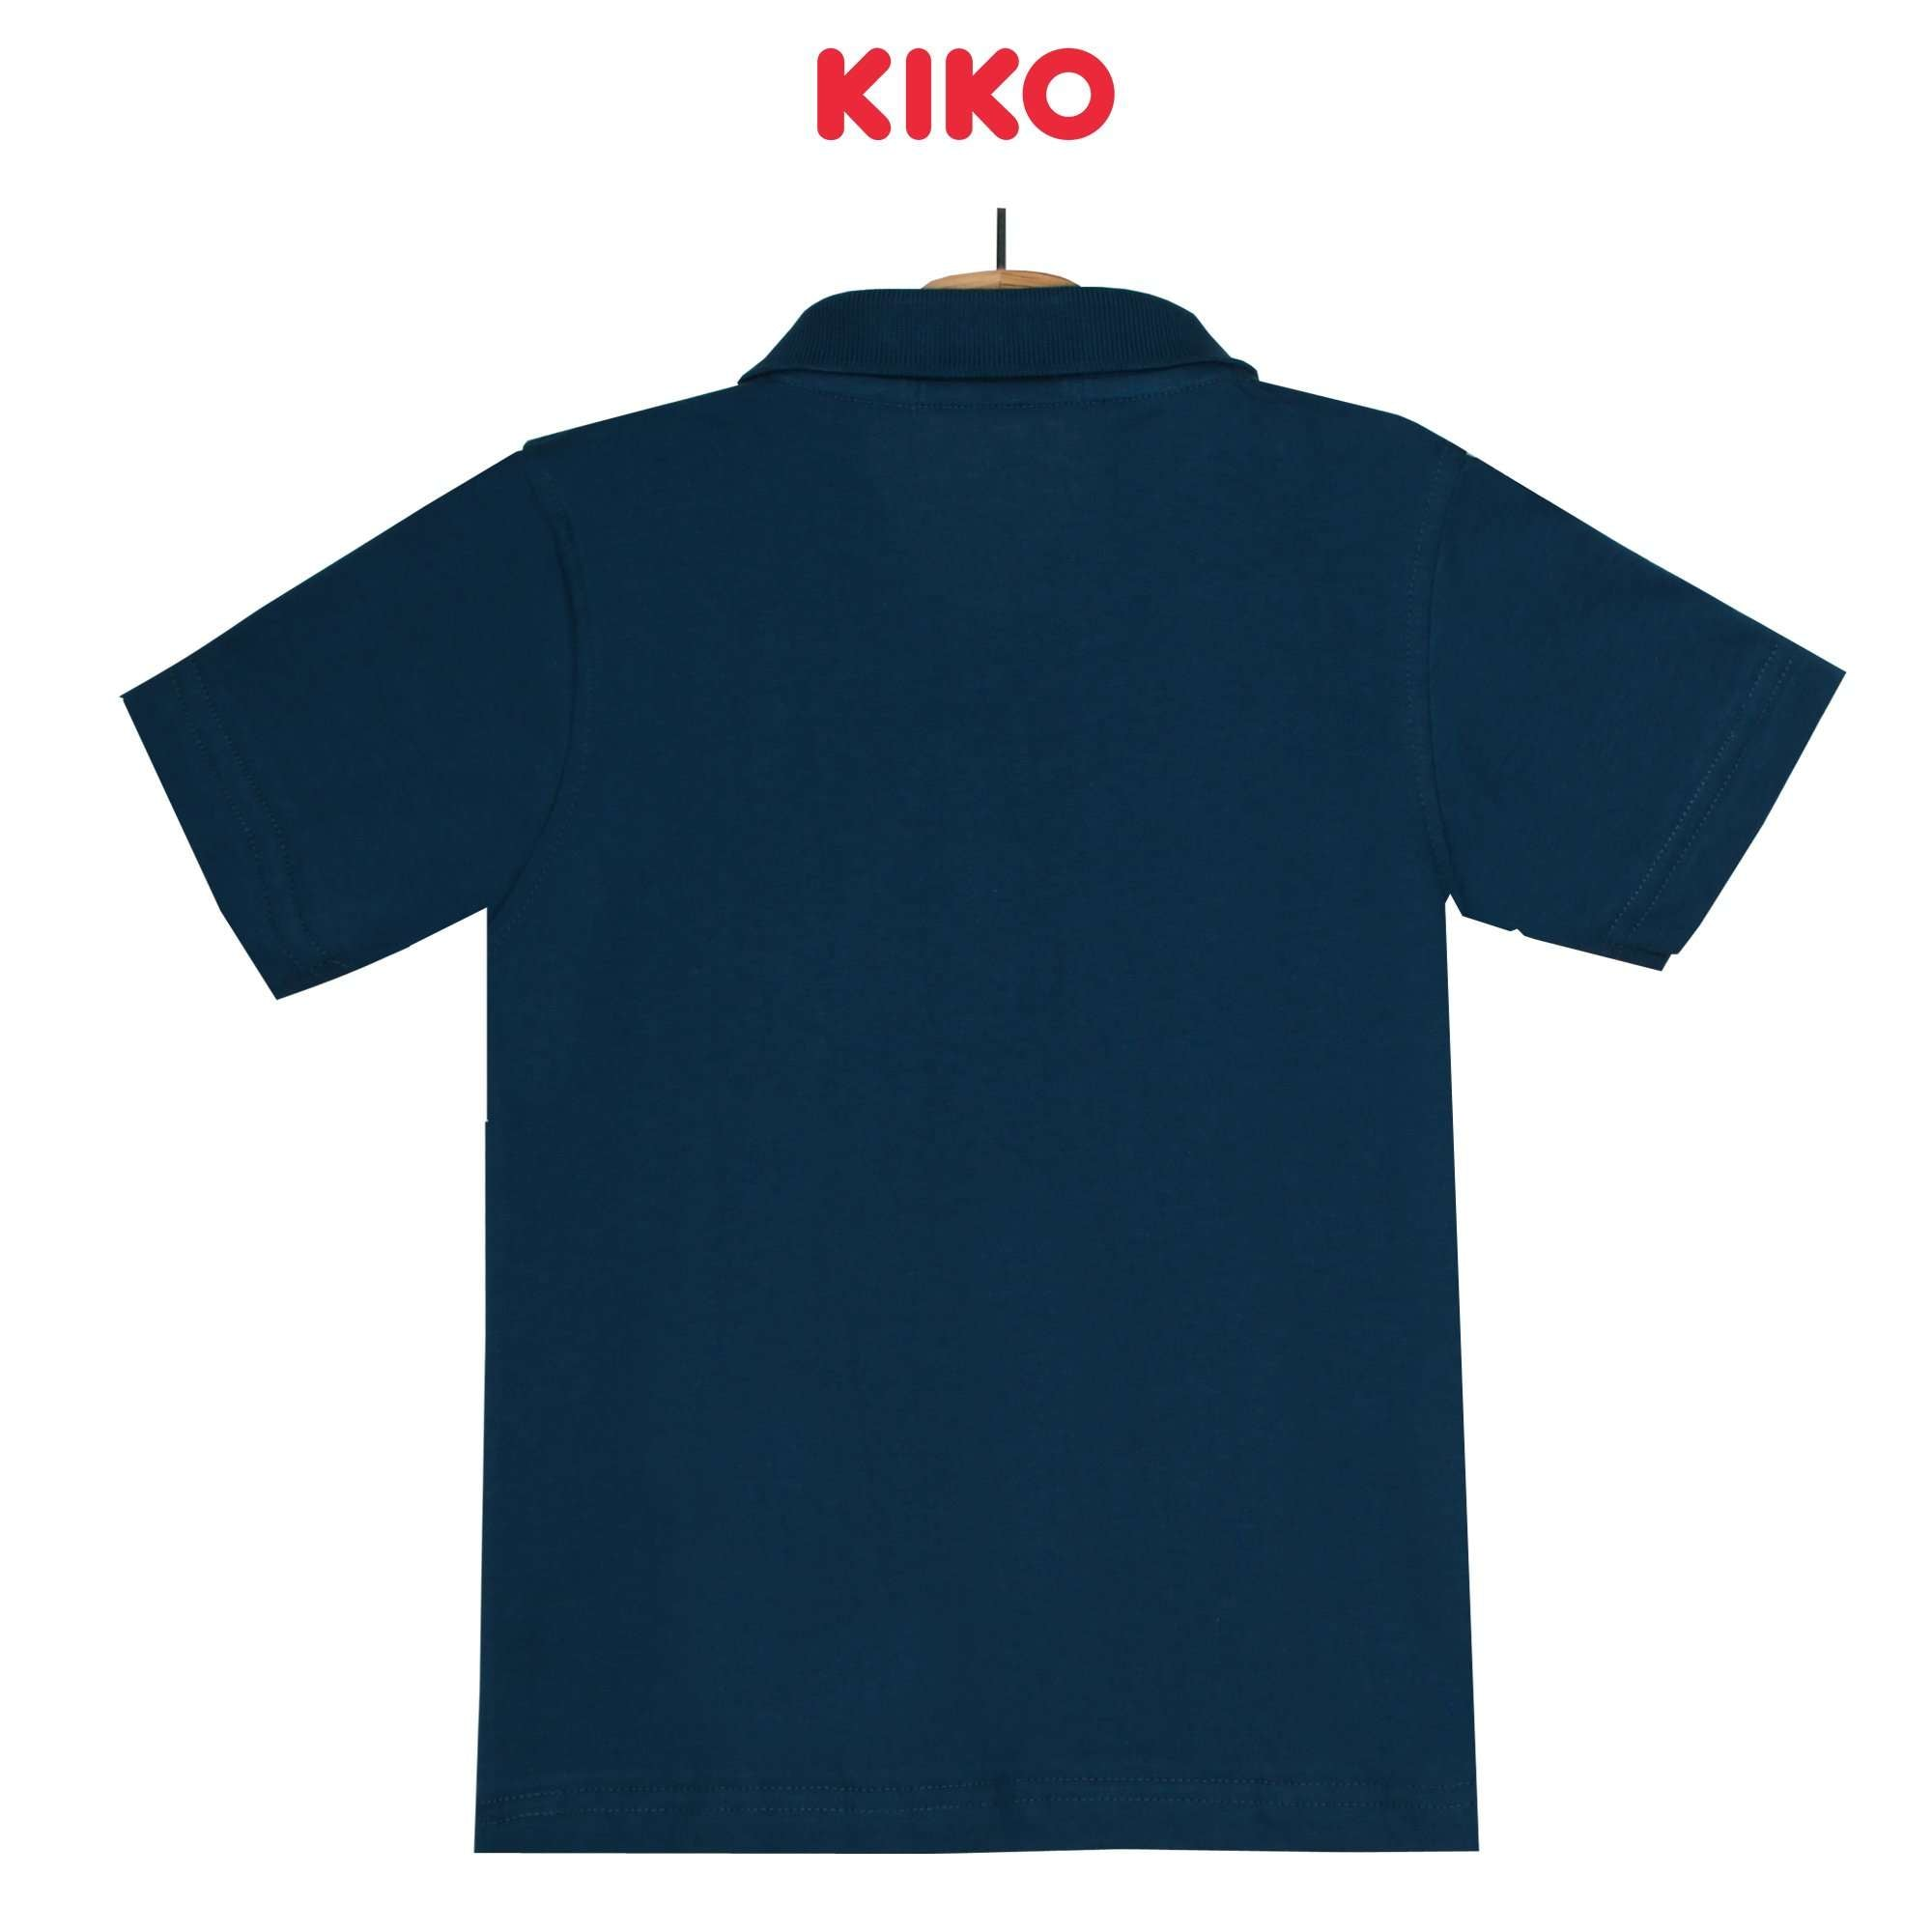 KIKO Boy Short Sleeve Collar Tee - Blue 130096-121 : Buy KIKO online at CMG.MY